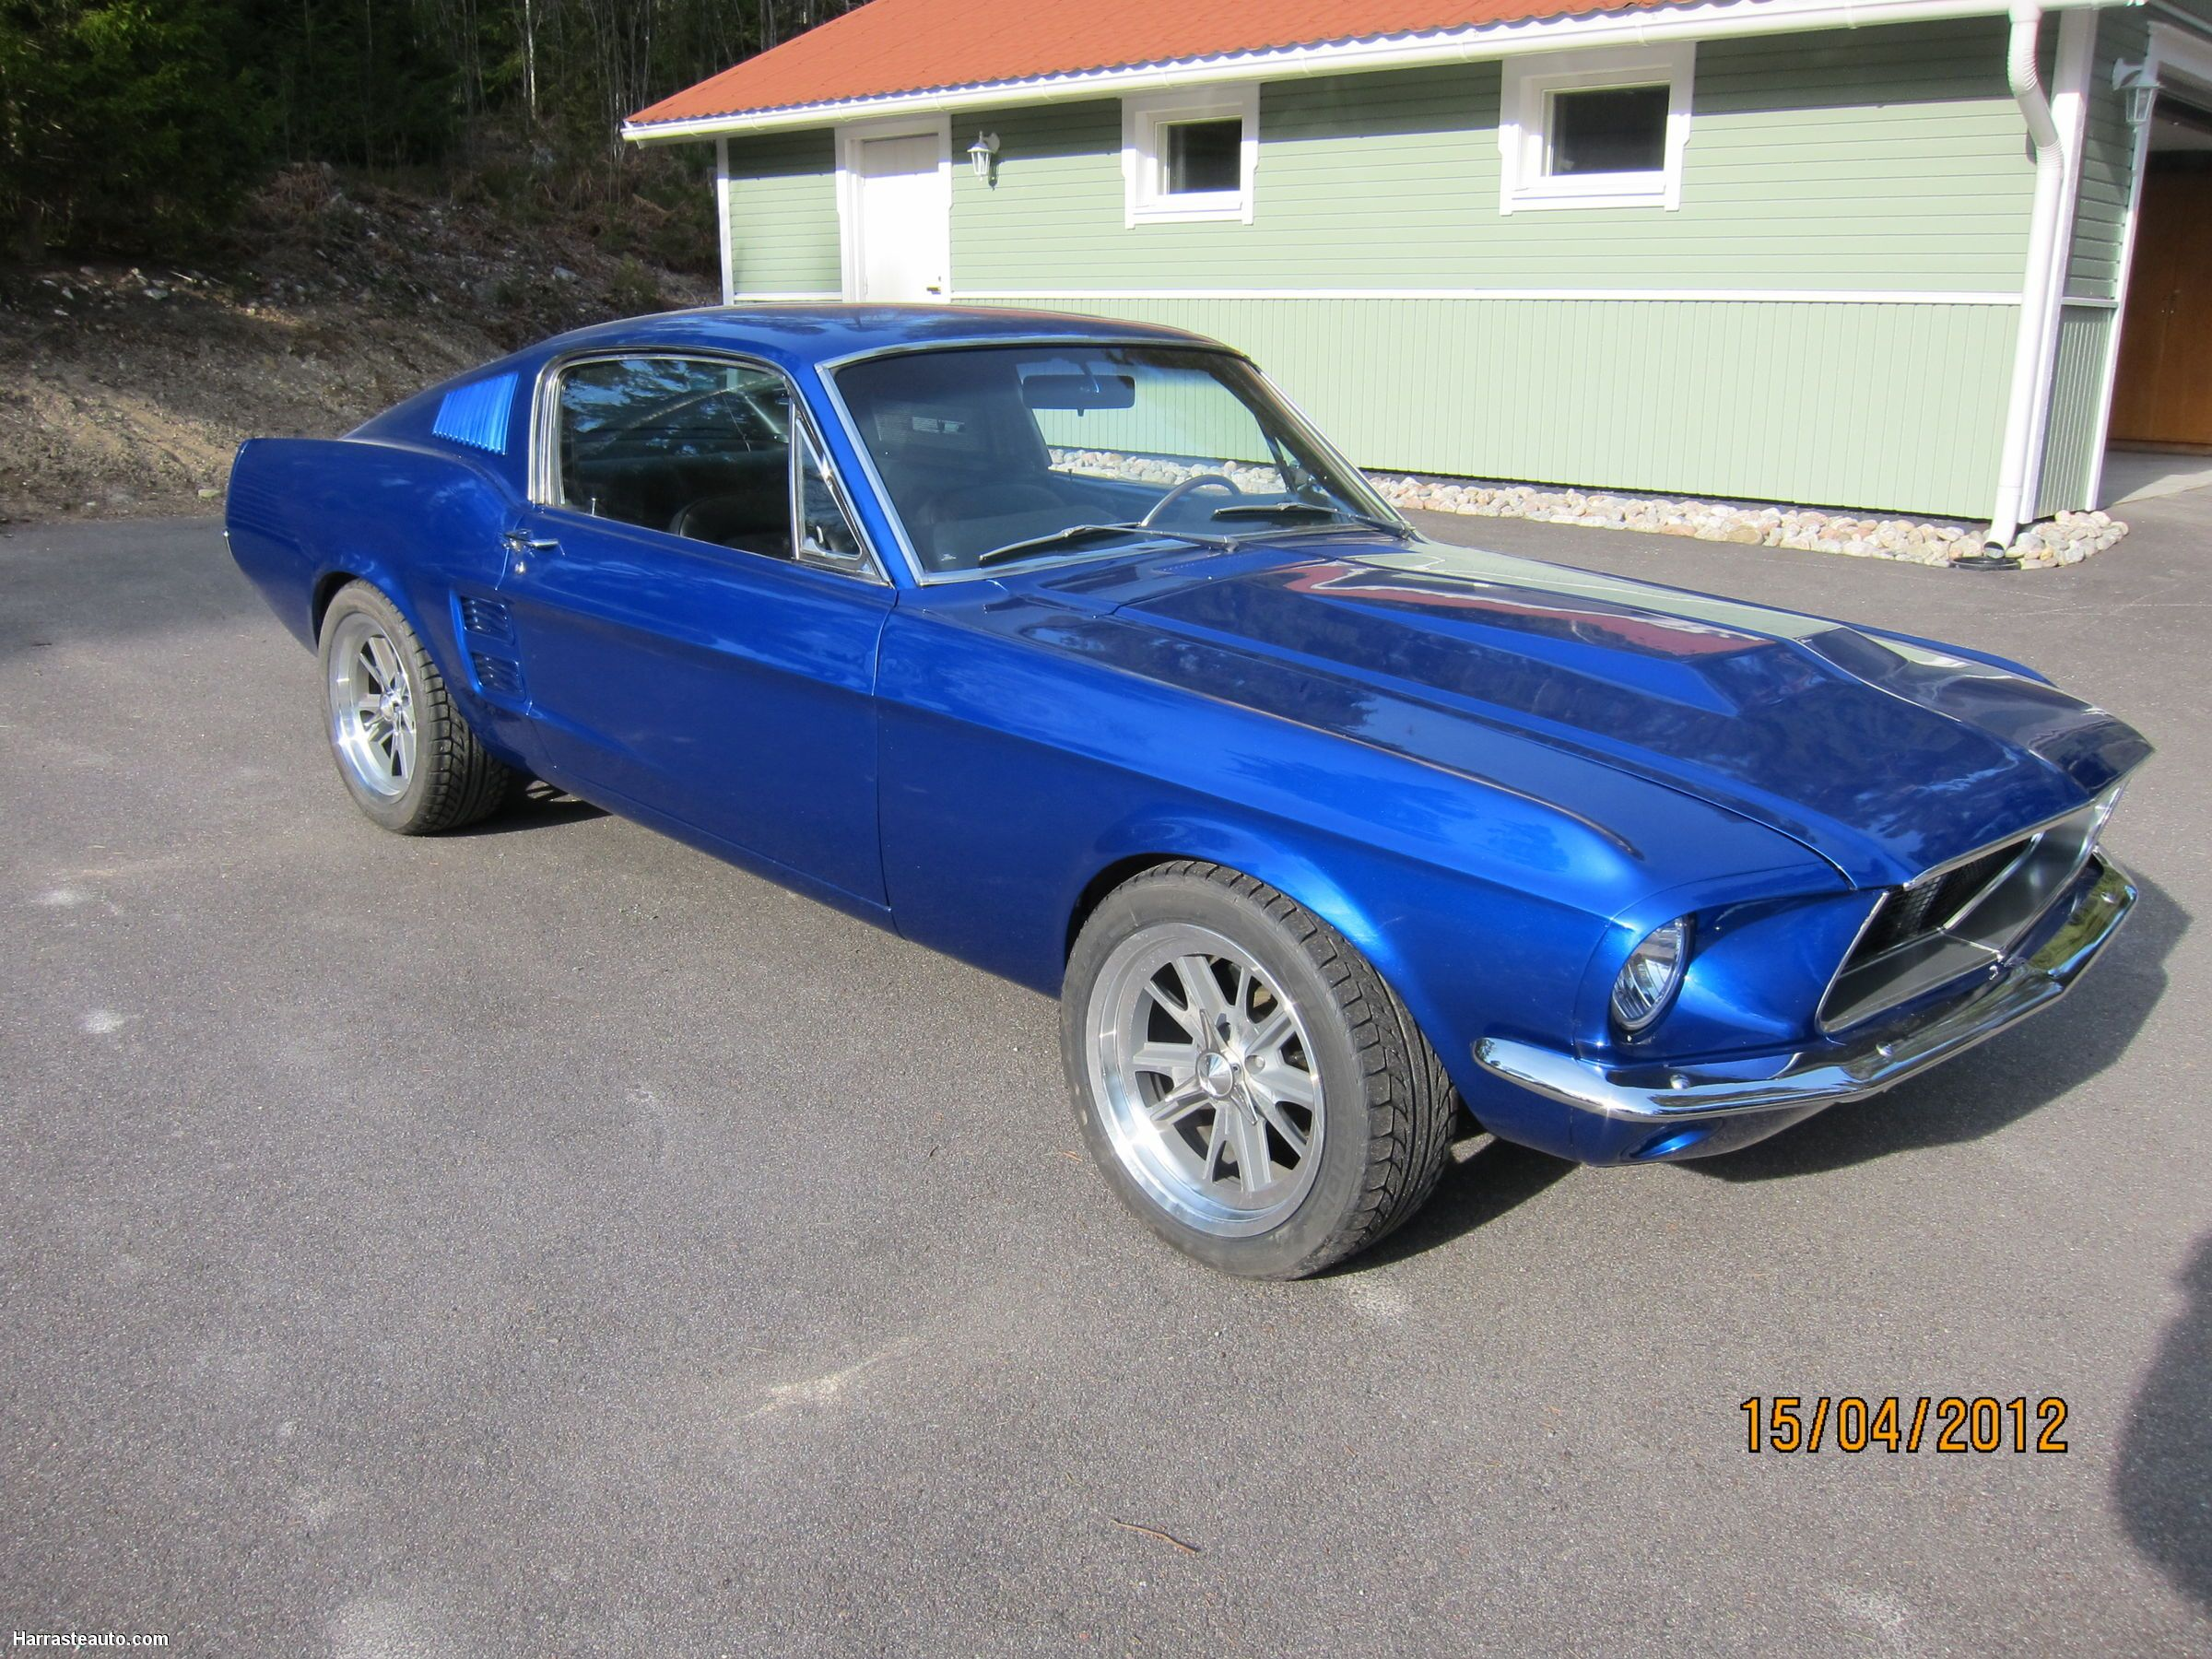 3 1967 Ford Mustang Fastback Someday Muscle Cars Mustang Ford